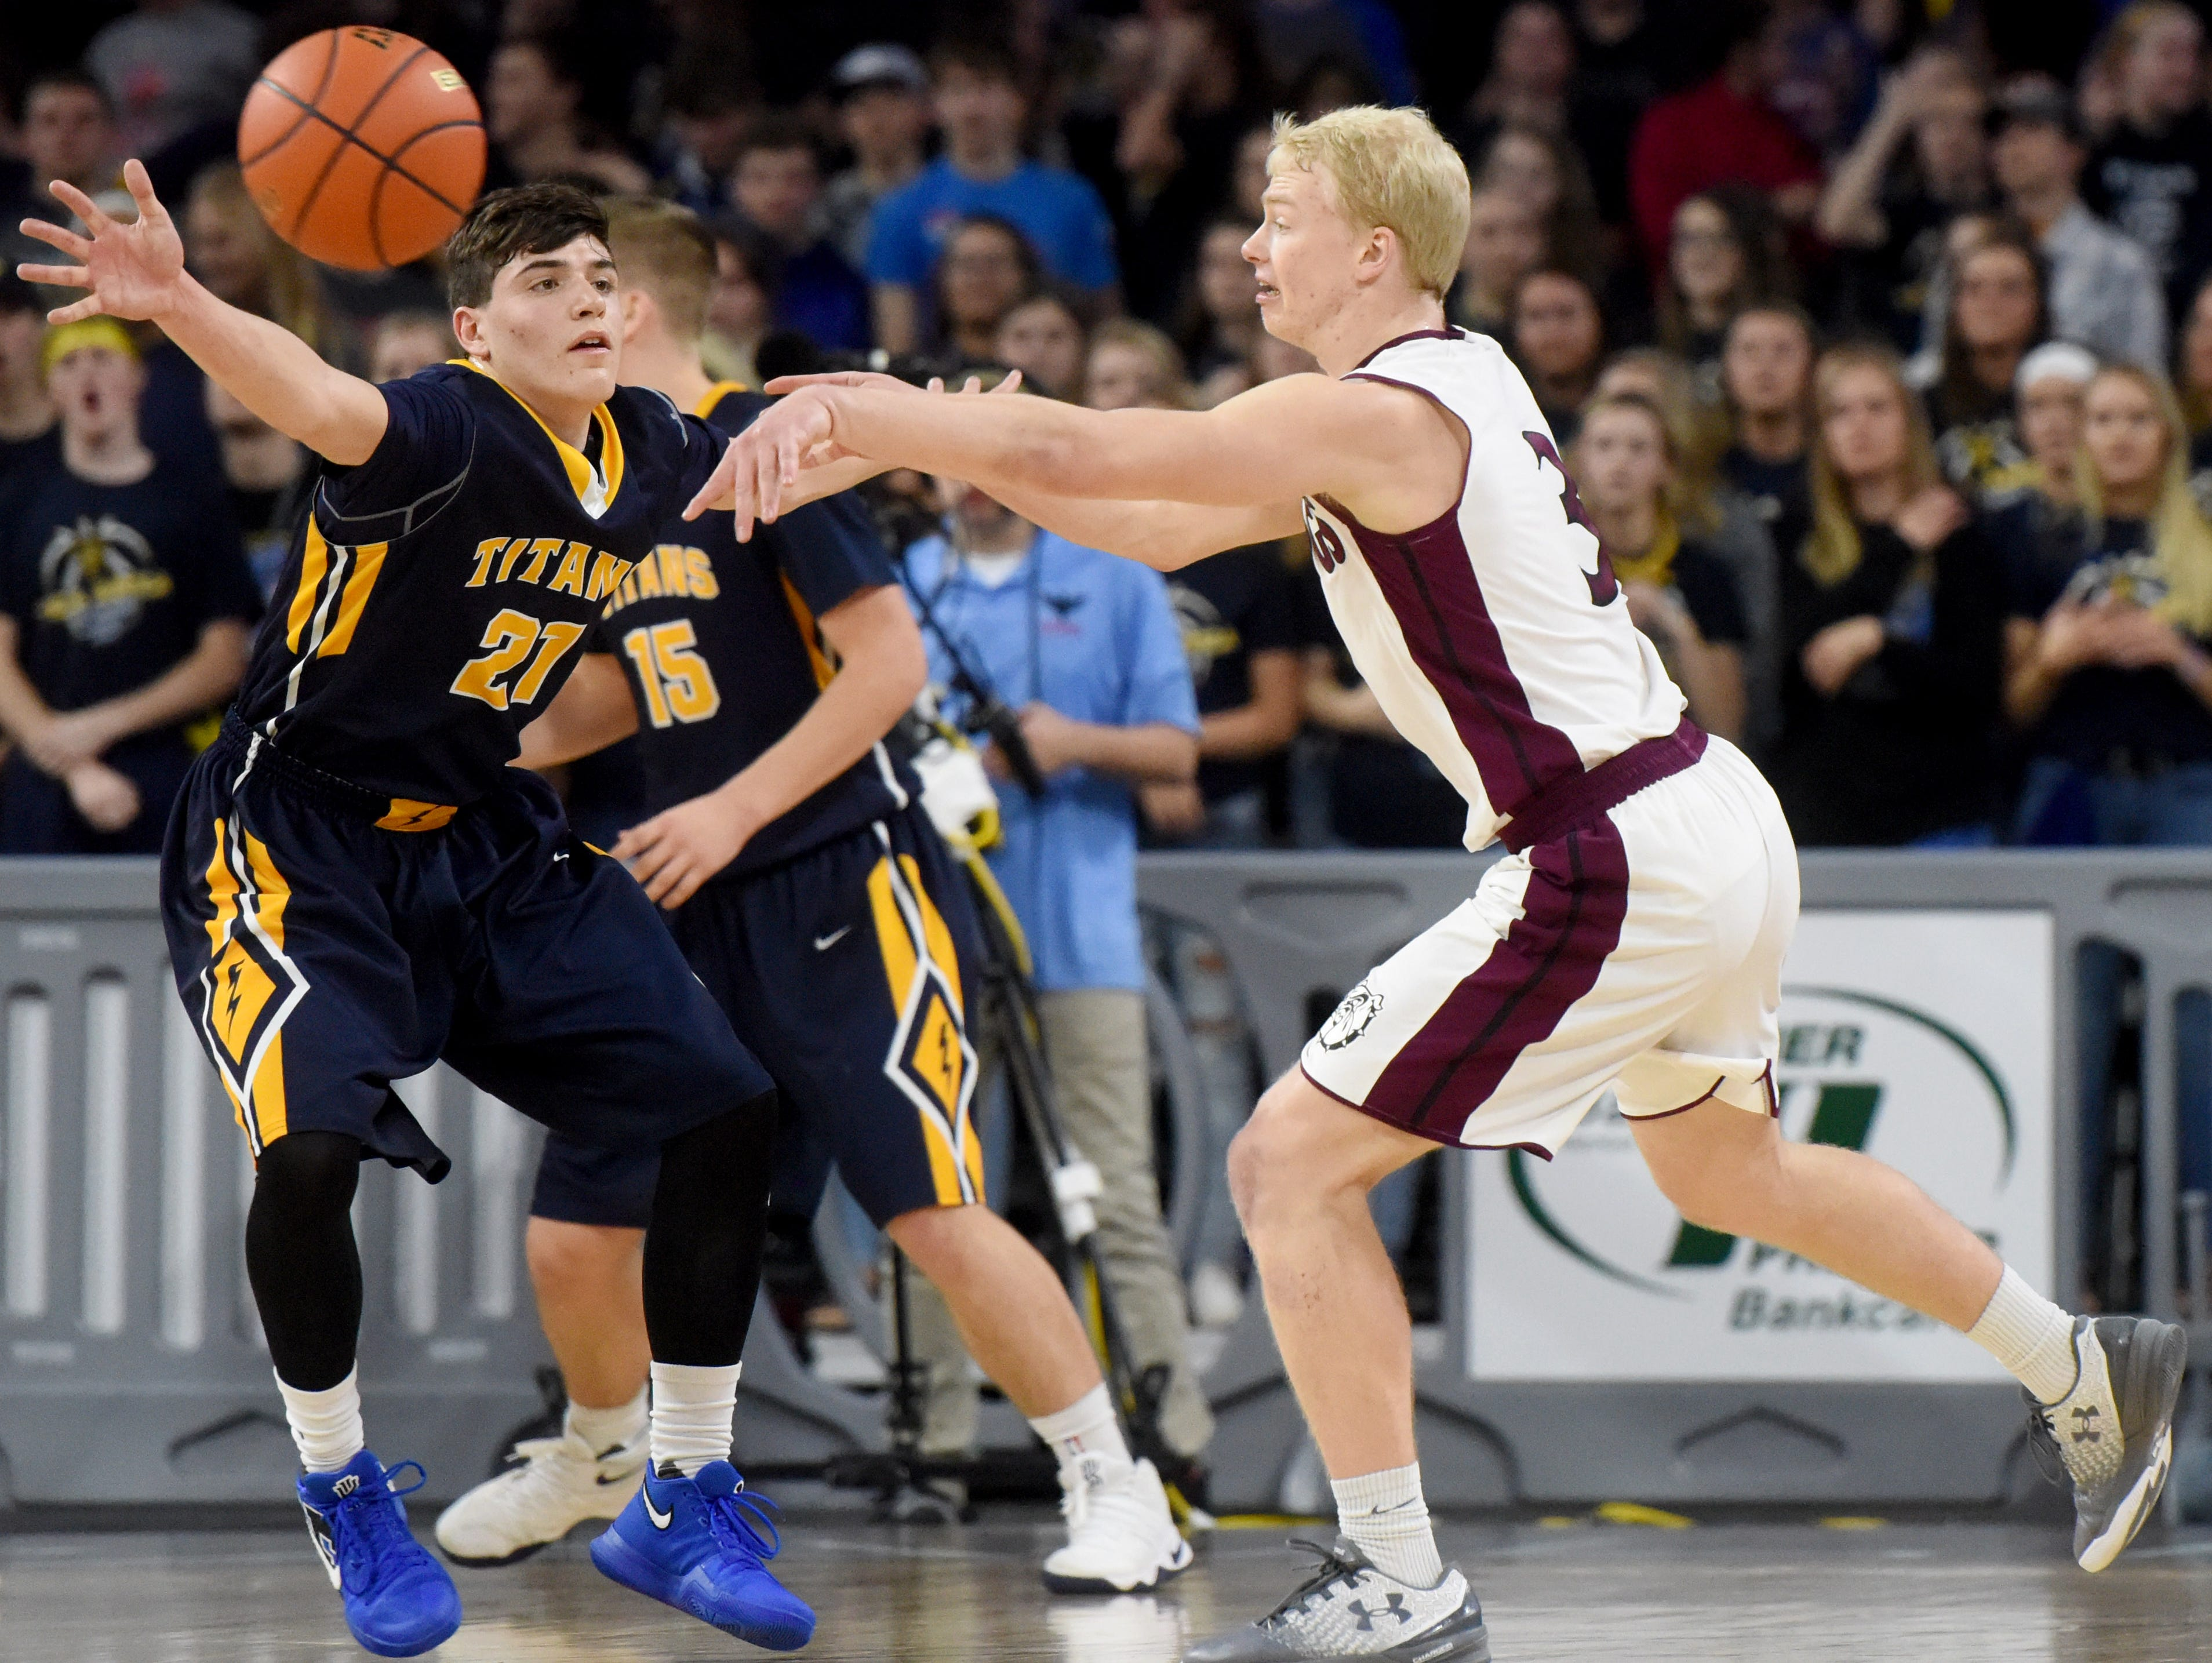 Tea Area vs. Madison during the 2017 SDHSAA Class A boy's basketball championship at the Denny Sanford Premier Center on Saturday, March 18, 2017.